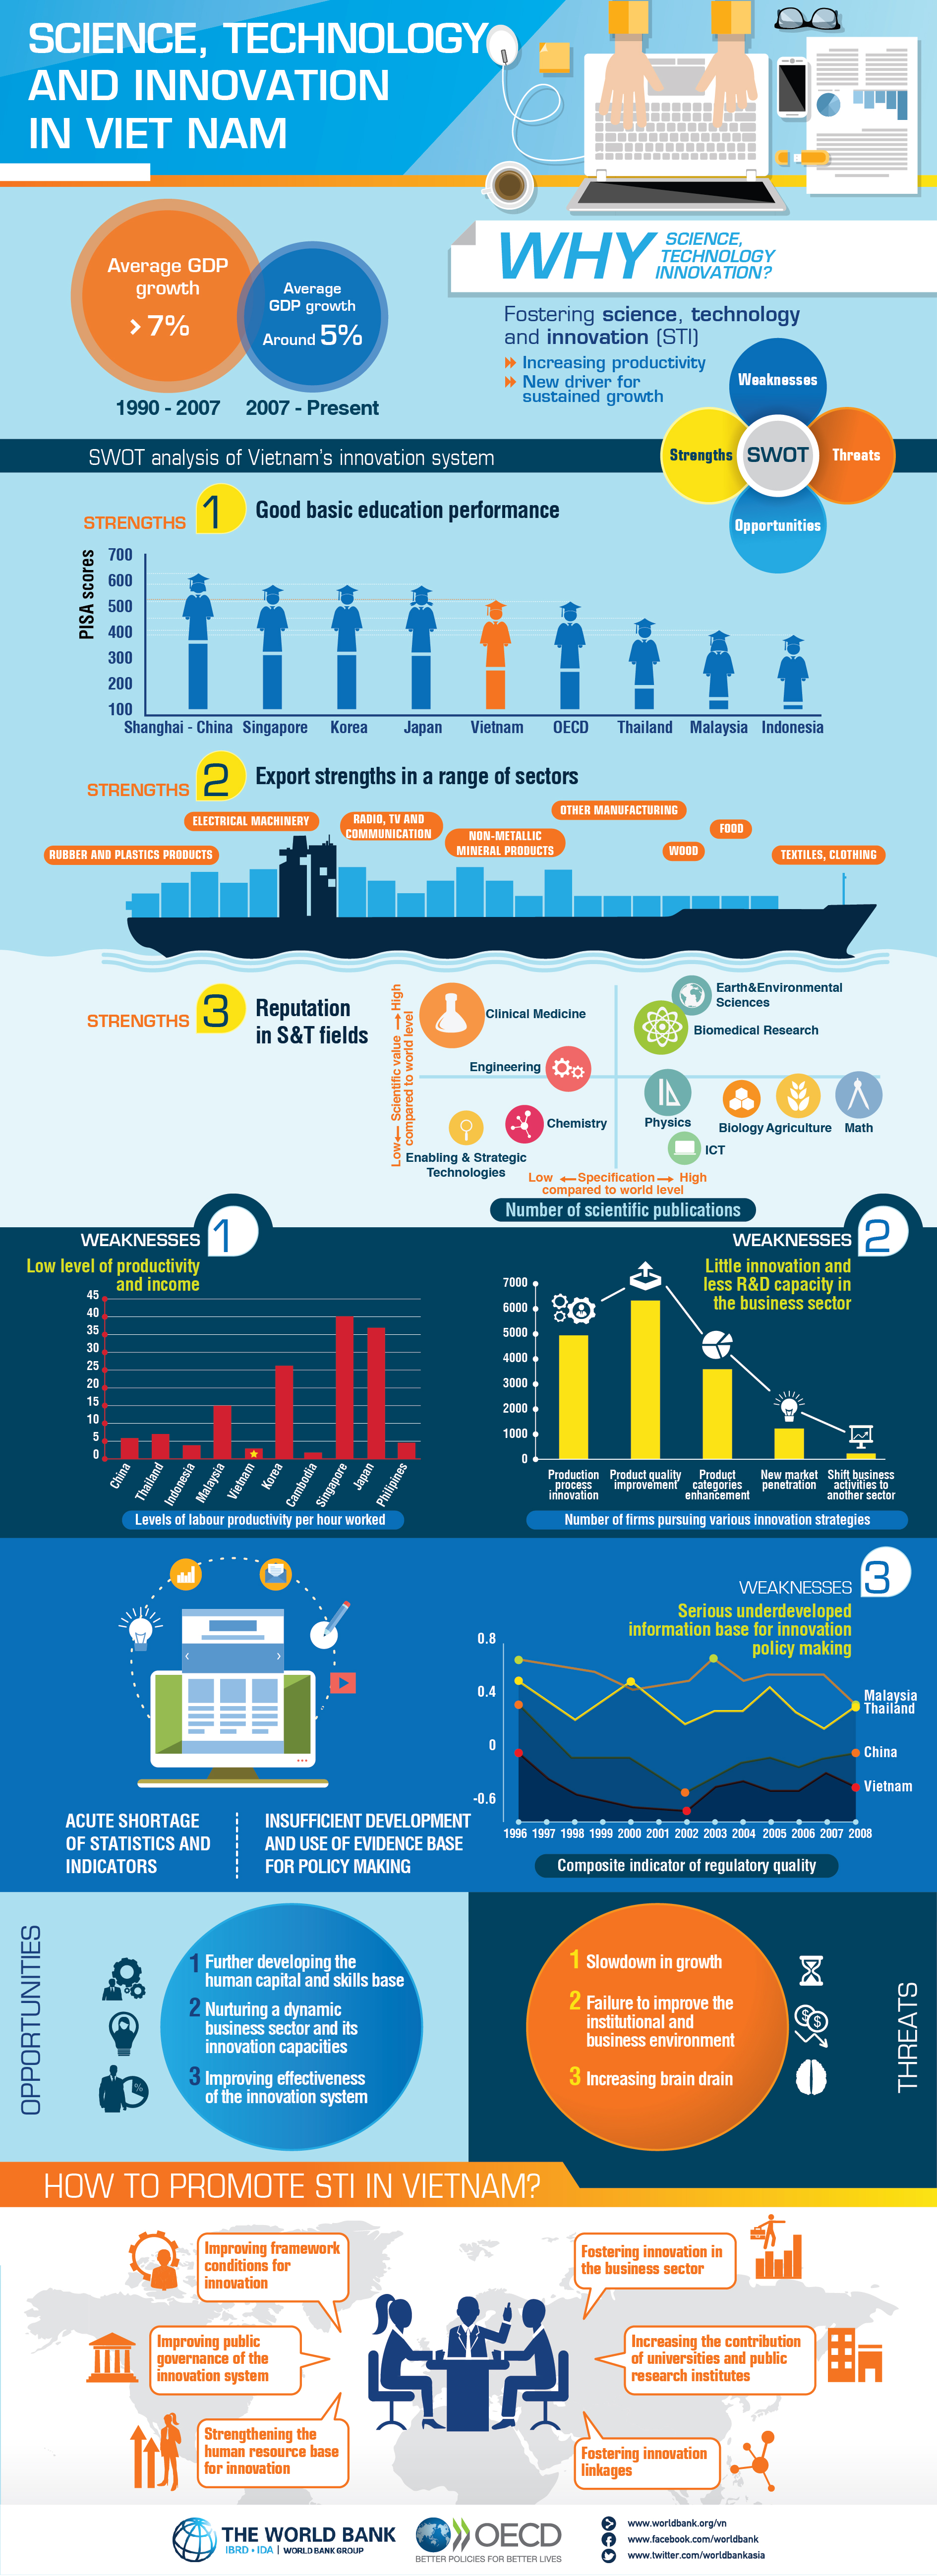 infographic science technology and innovation in vietnam